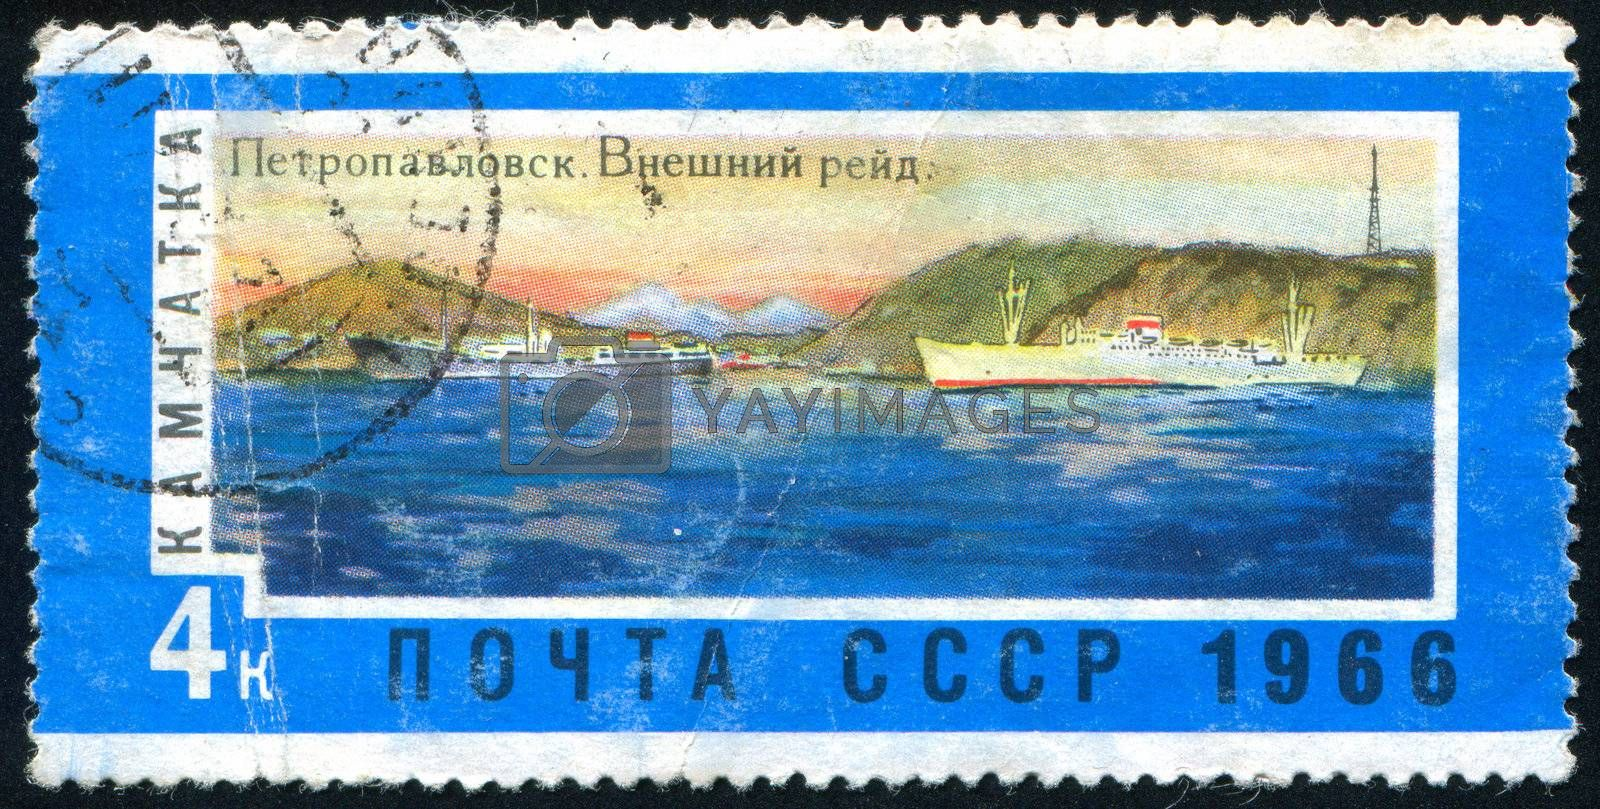 RUSSIA - CIRCA 1966: stamp printed by Russia, shows Petropavlosk-Kamchatski, circa 1966.